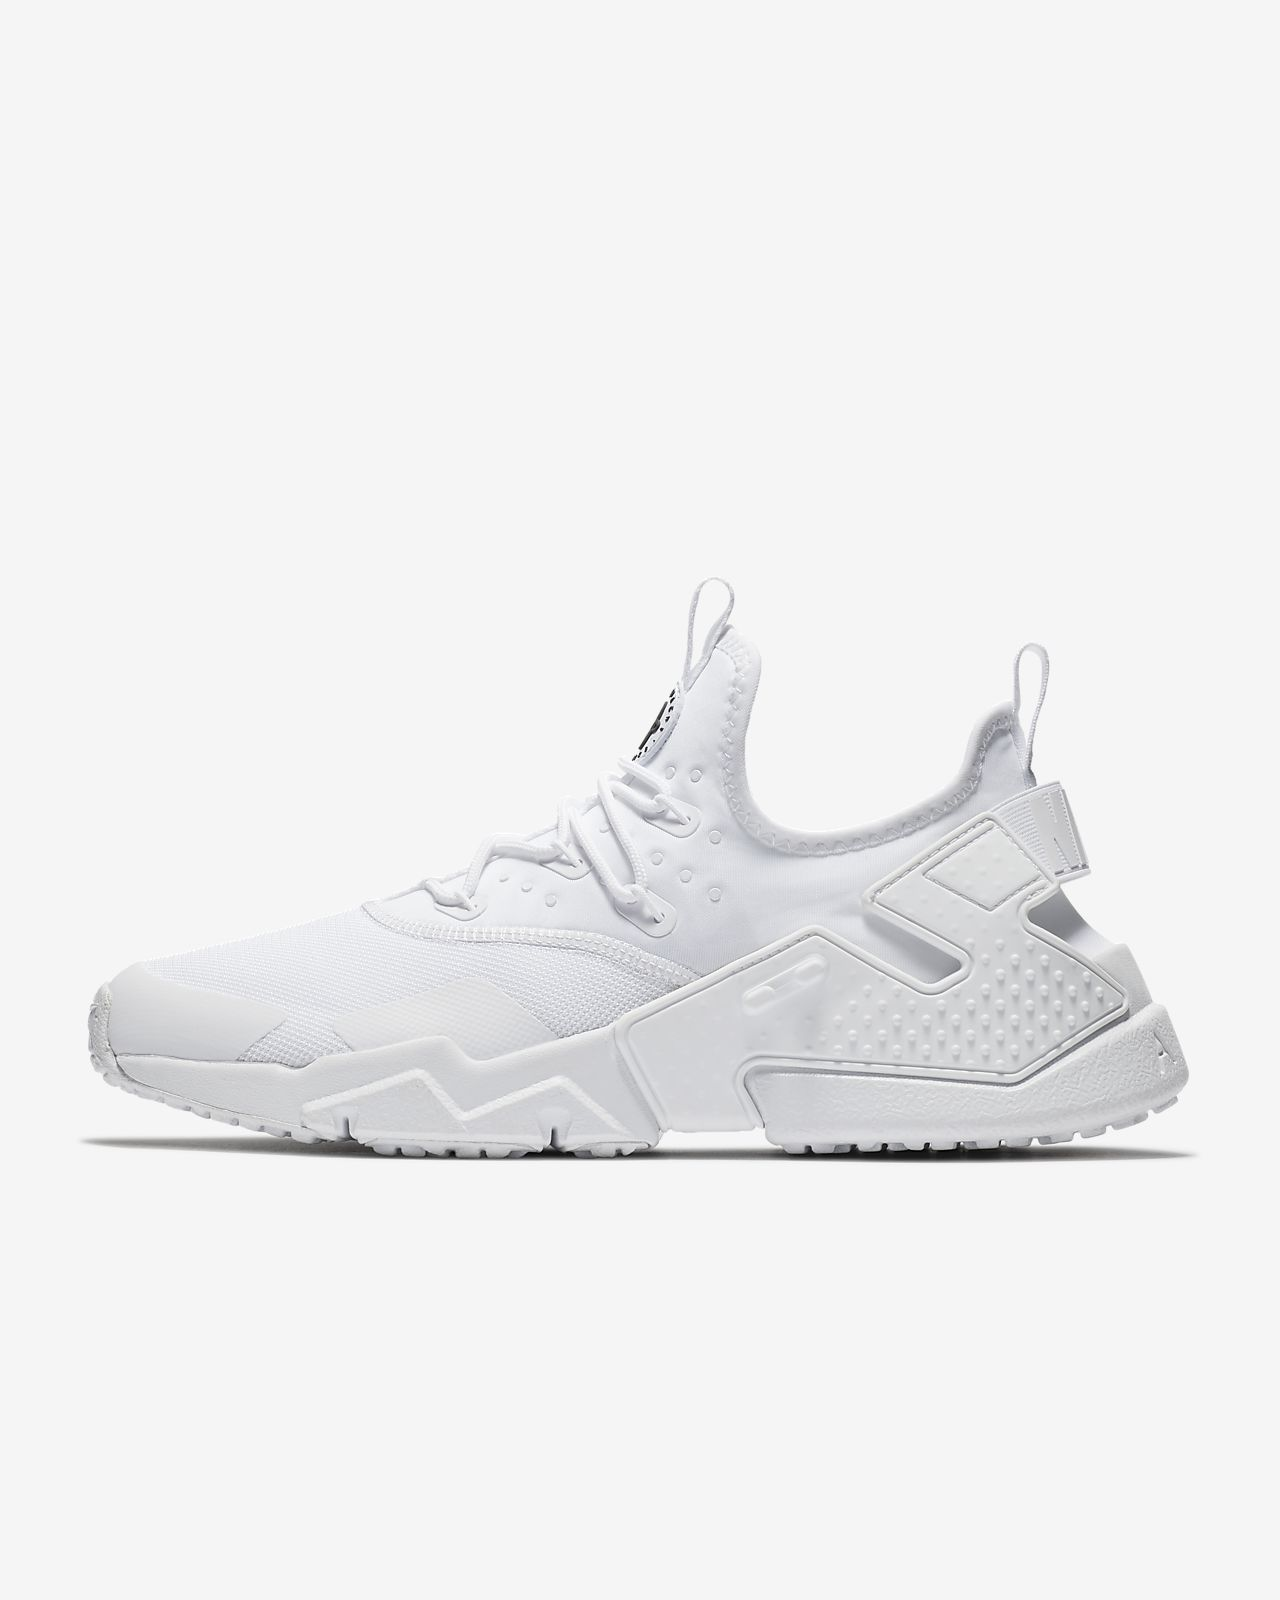 8b7f6edf42b3 Nike Air Huarache Drift Men s Shoe. Nike.com